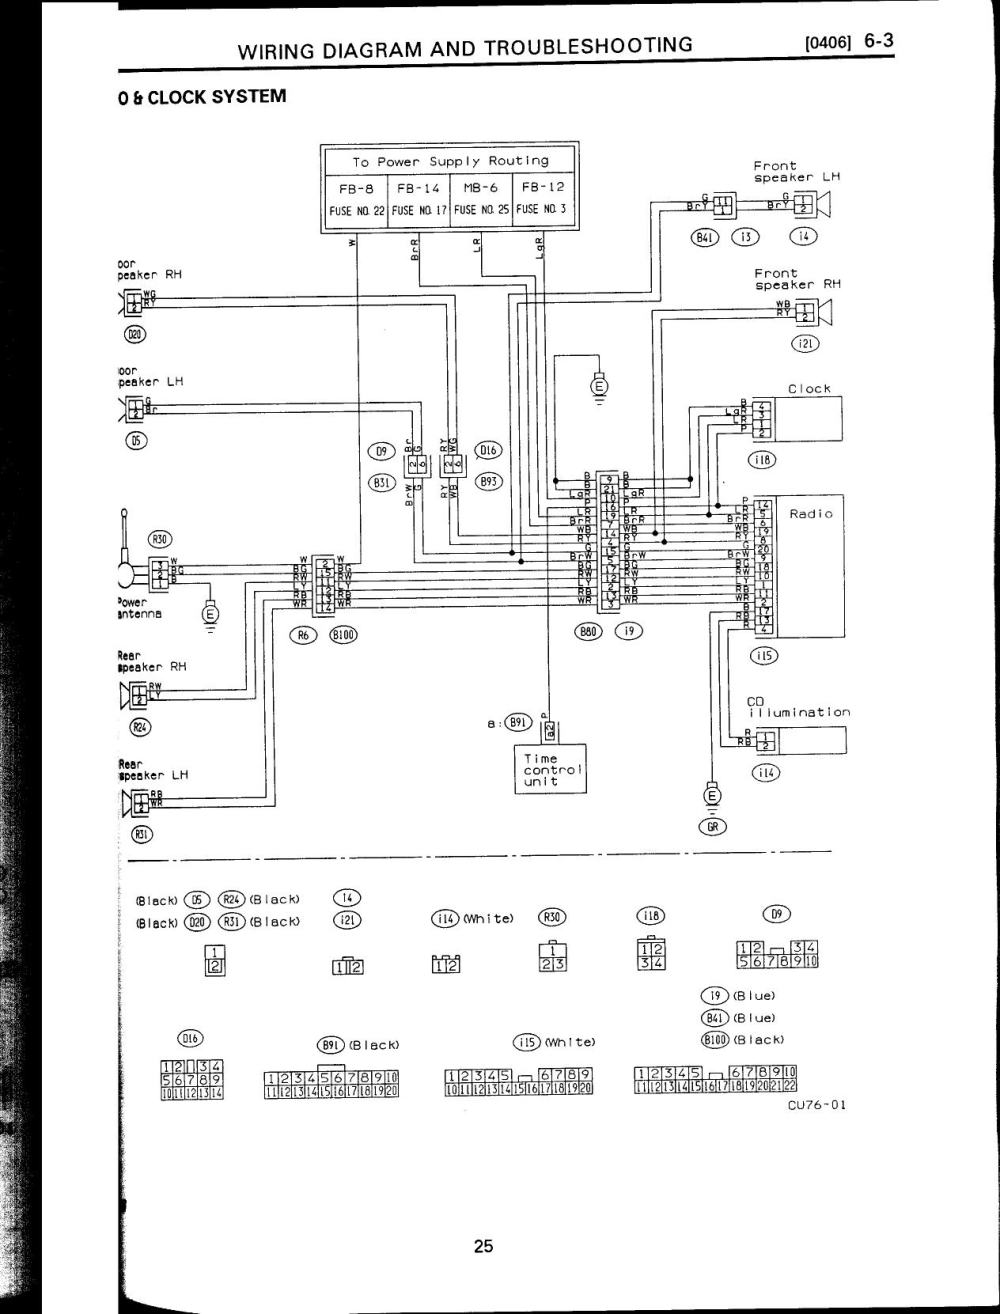 medium resolution of 94 impreza wiring diagram wiring diagram for you wiring diagram for 1997 subaru impreza get free image about wiring